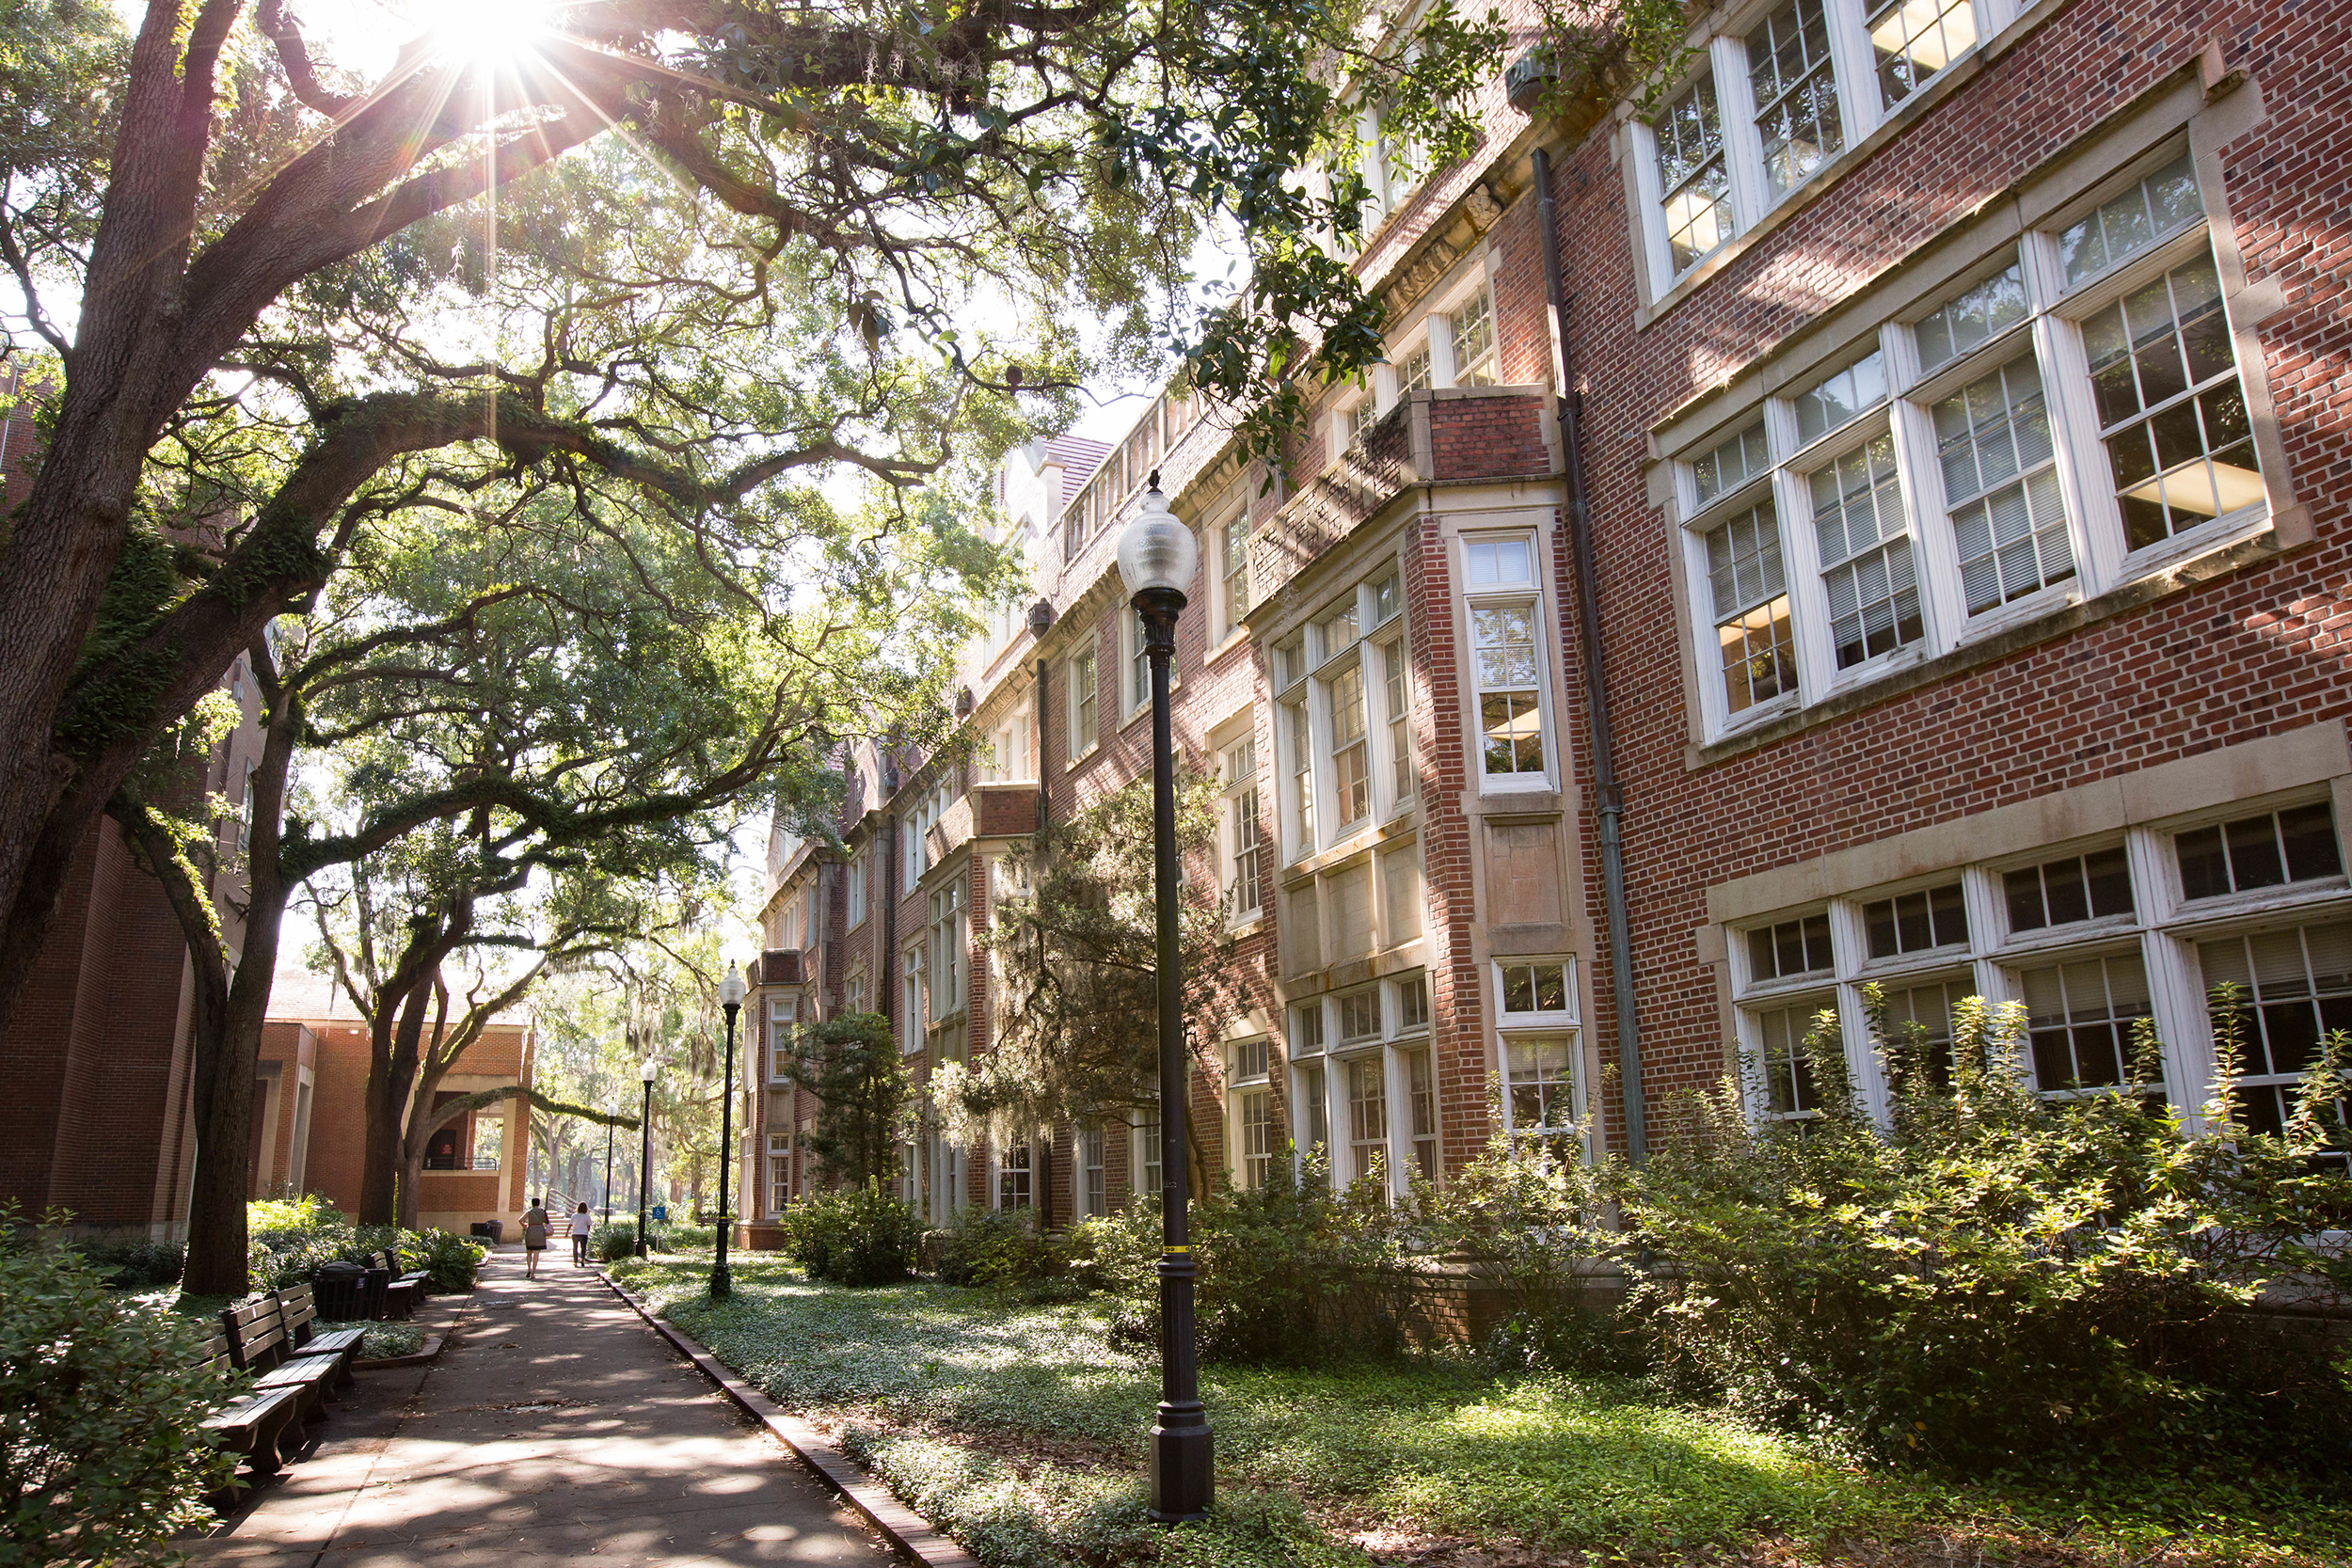 University of Florida is full of natural and architectural charm. (Source: University Relations)